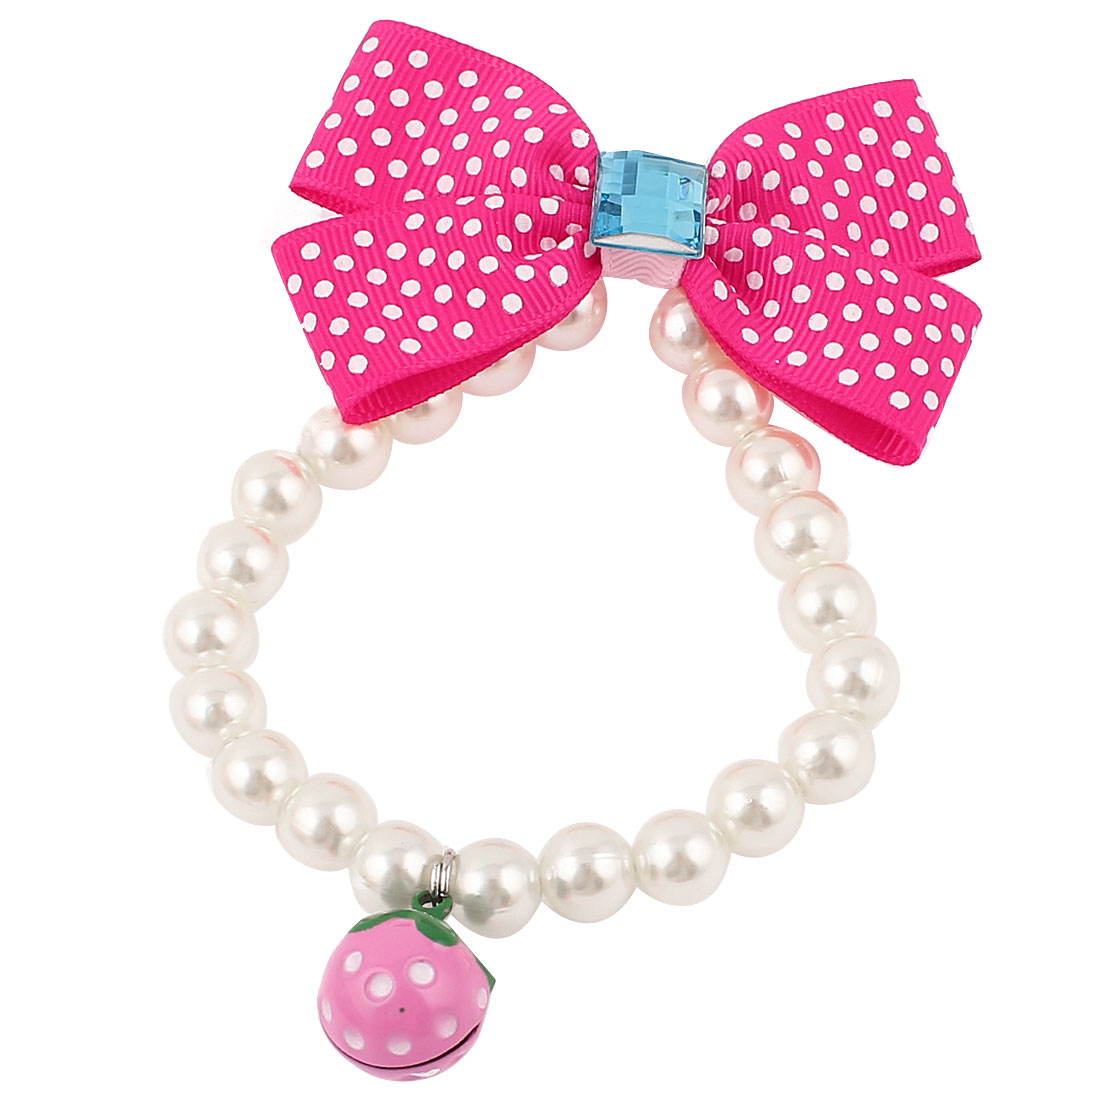 Metal Bell Pendant Bowtie Accent Pet Dog Plastic Beads Pearls Collar Necklace White Fuchsia XS